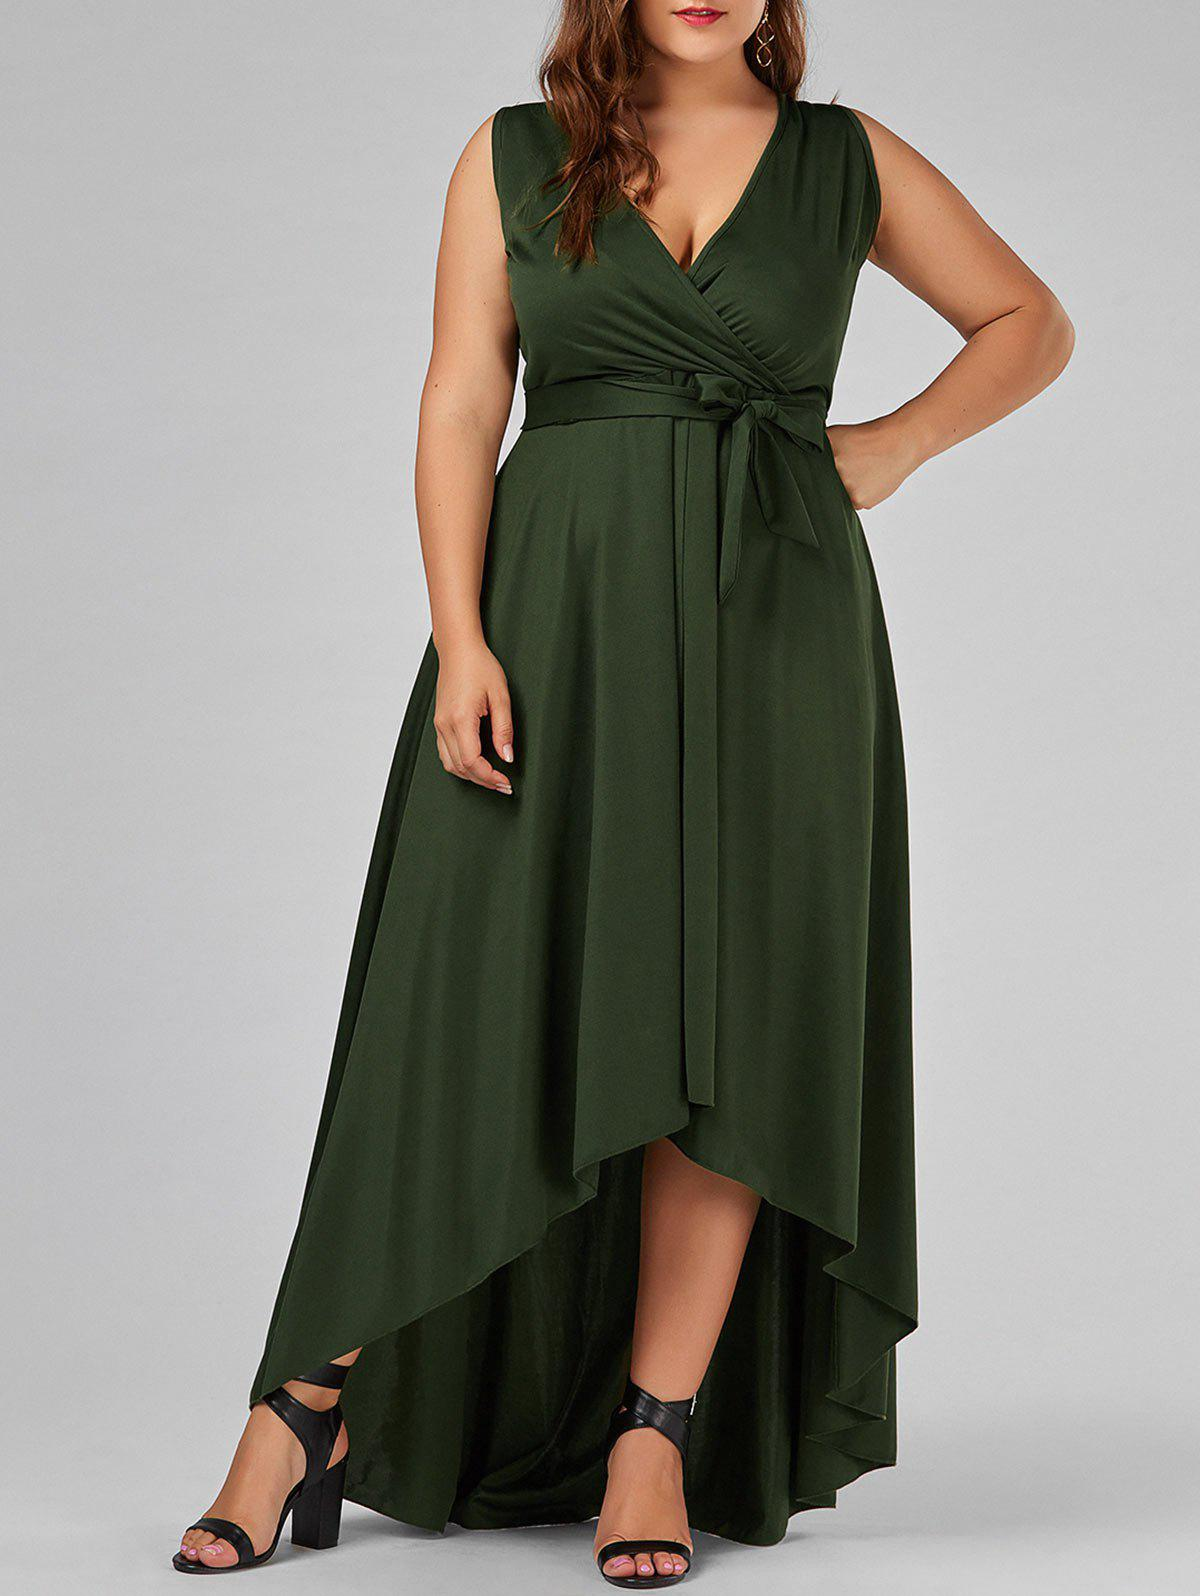 Green dress plus size in store